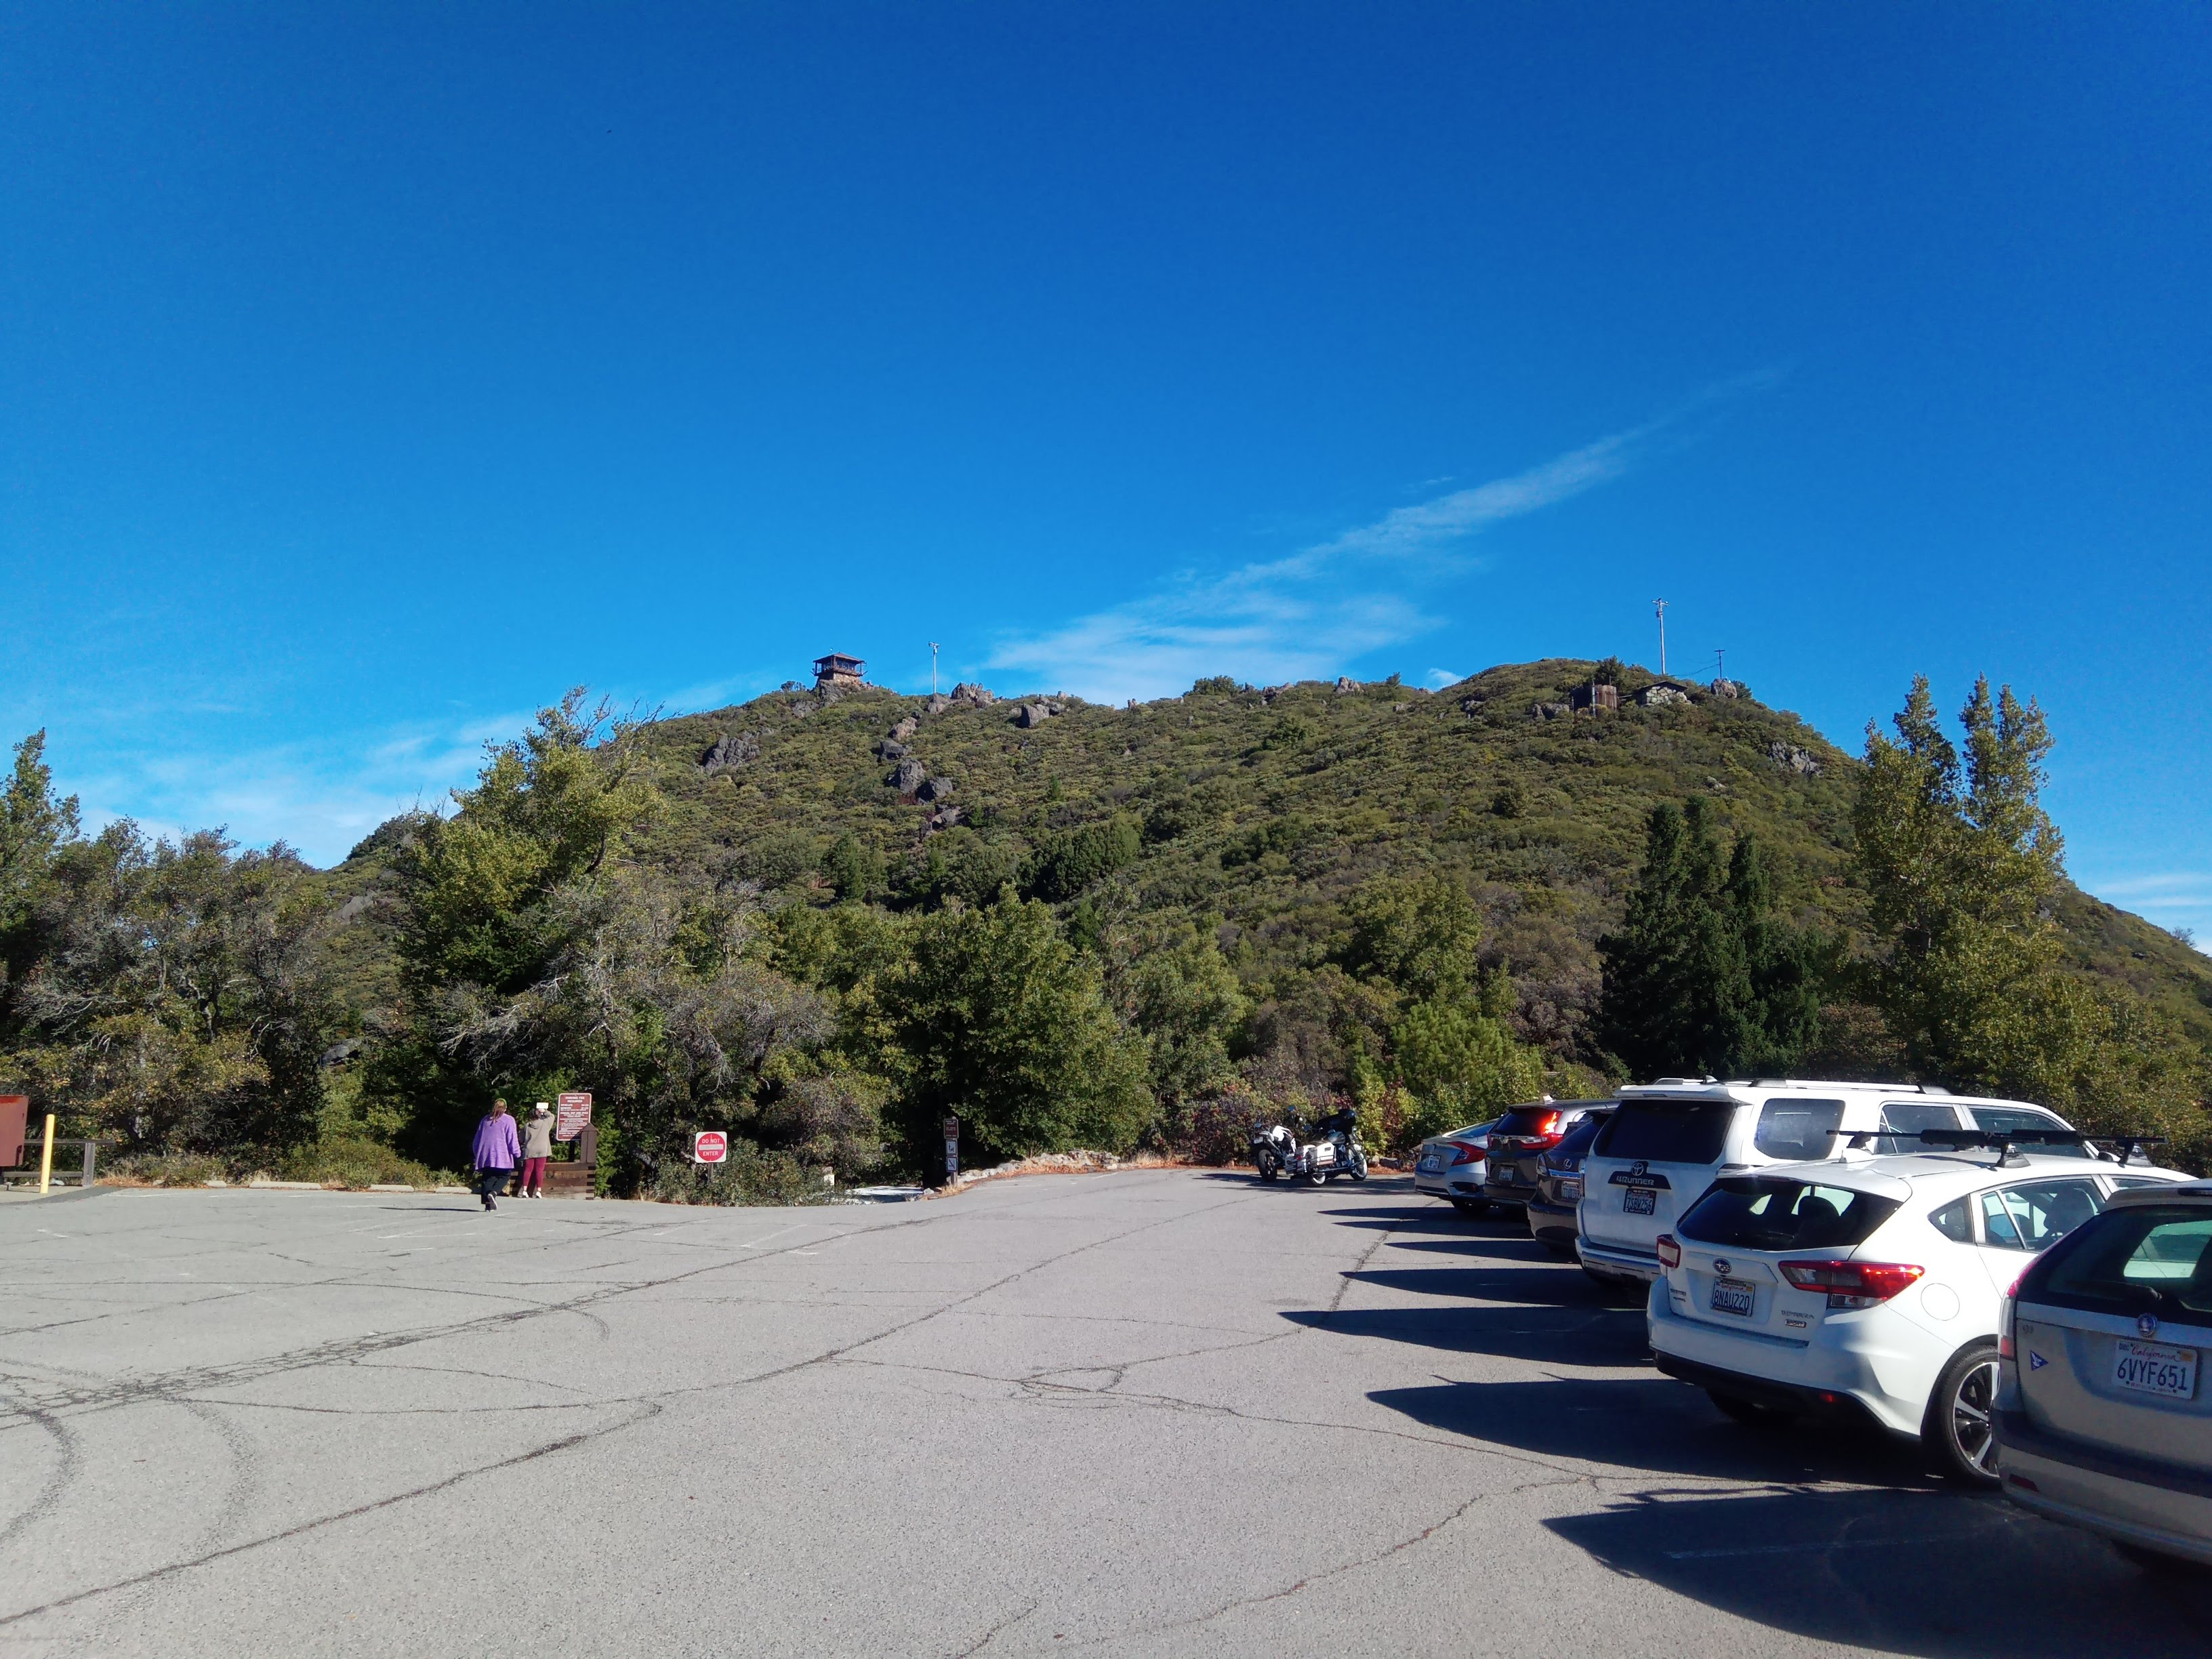 The summit as seen from parking